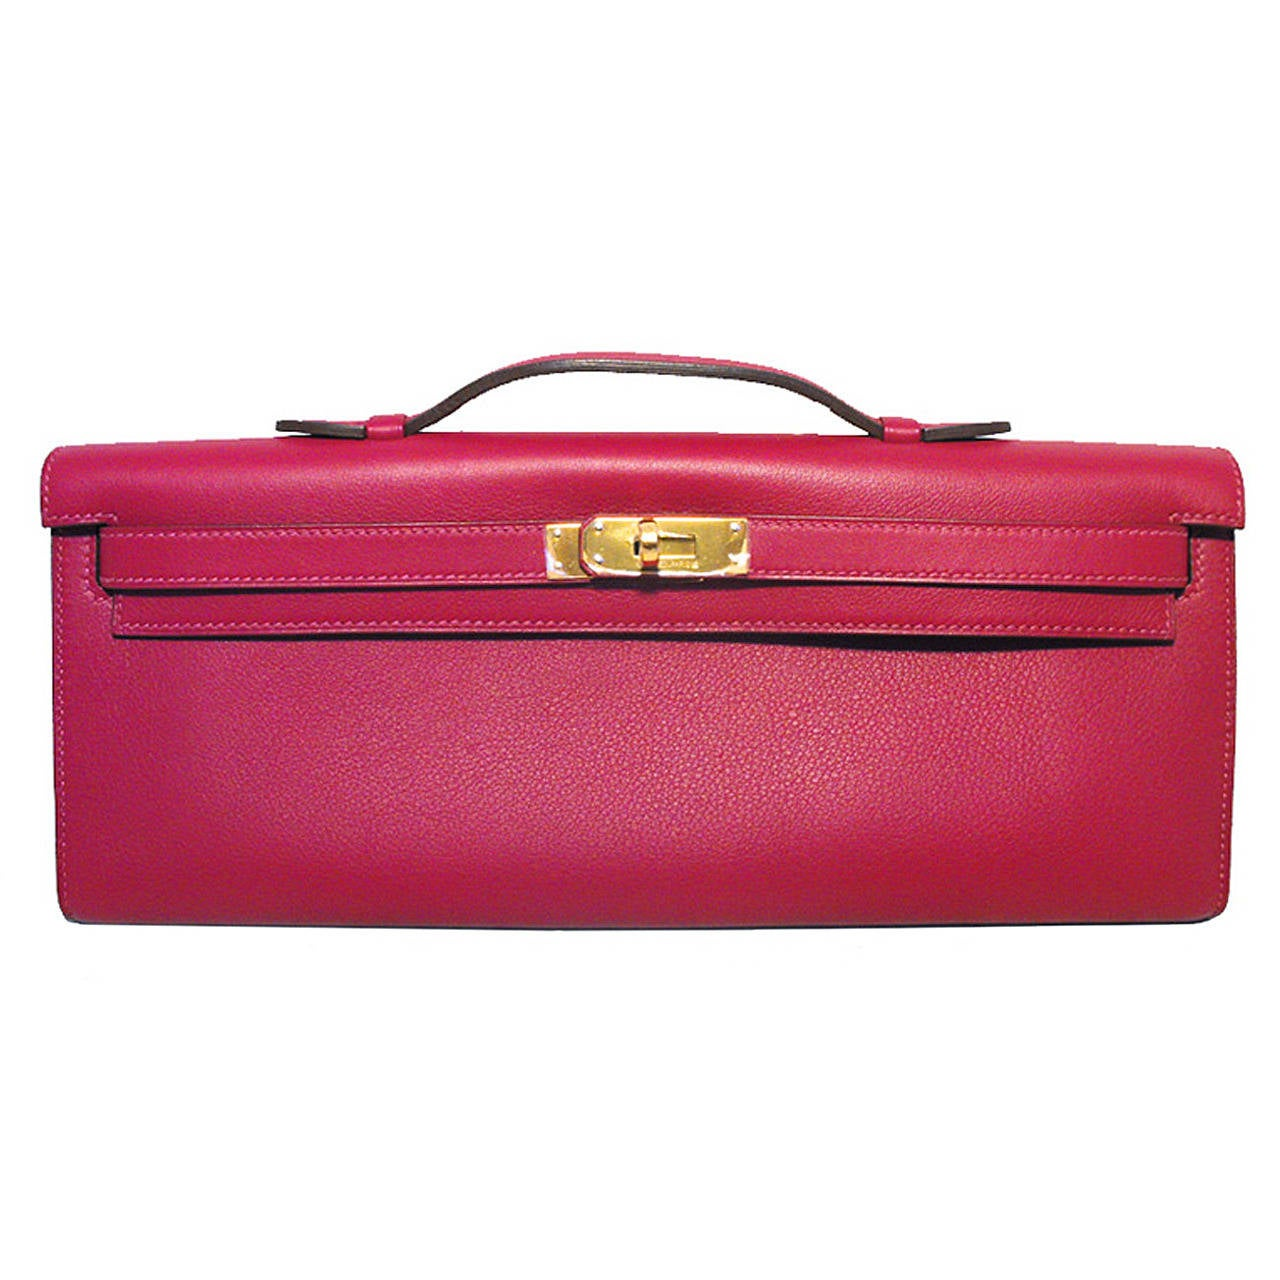 Hermes Fuchsia Swift Leather Kelly Cut Clutch Handbag  For Sale